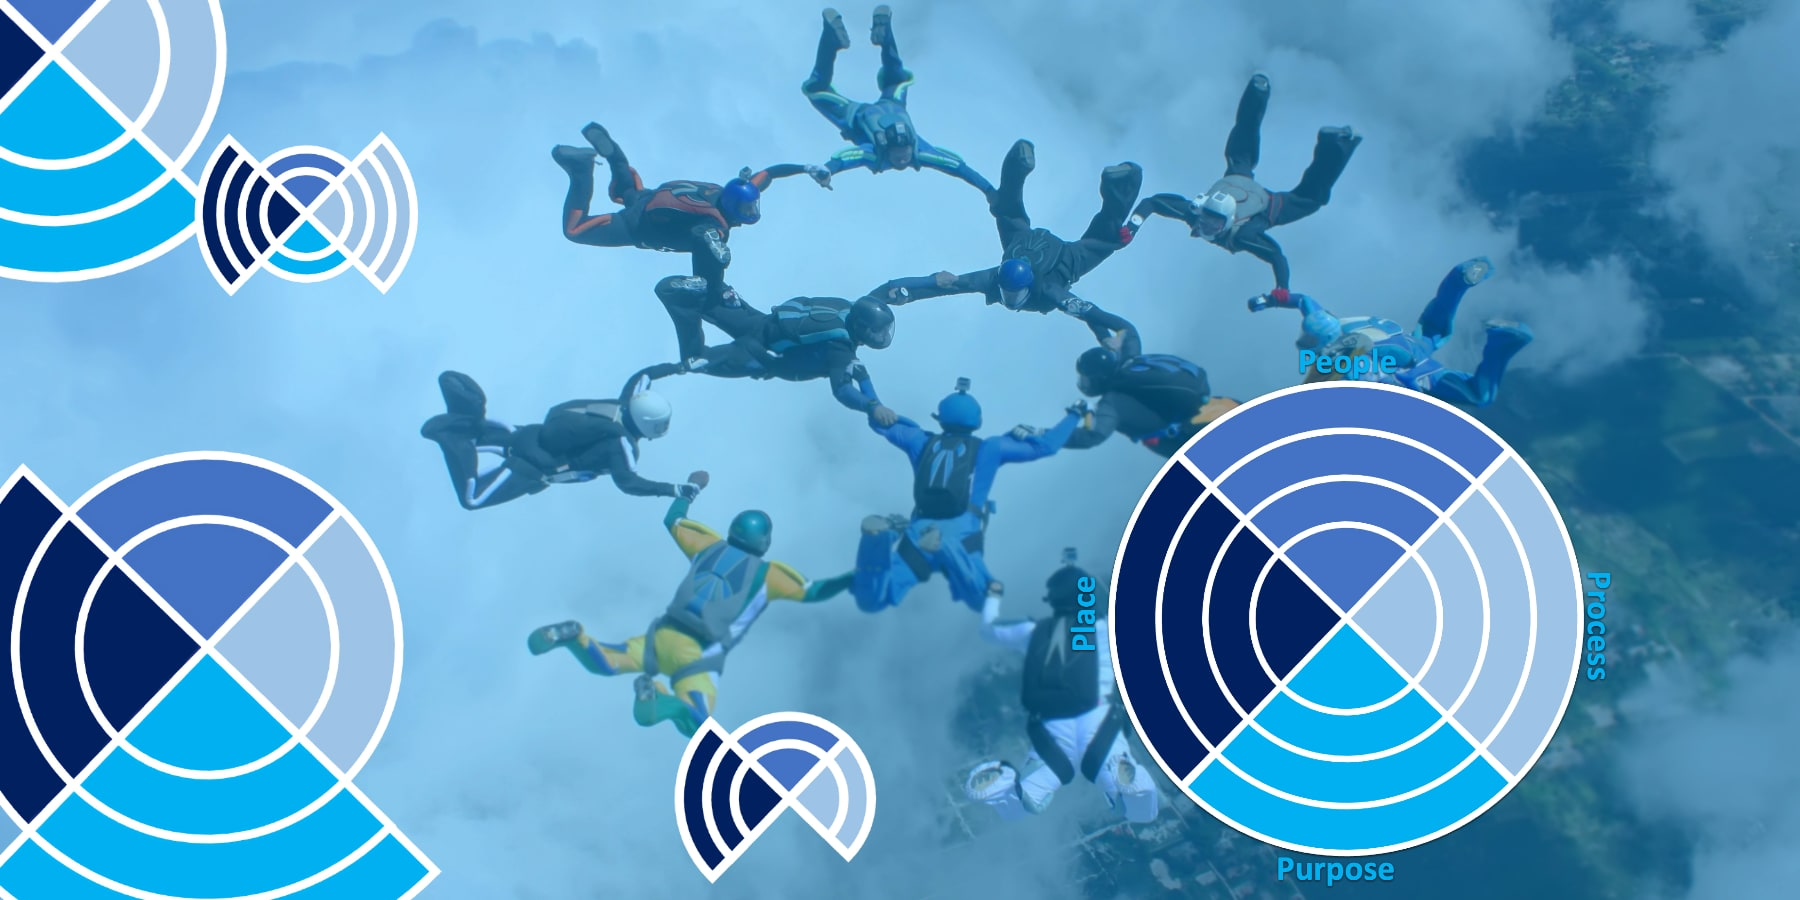 Skydivers in a circle, with an overlay of graphic circles.